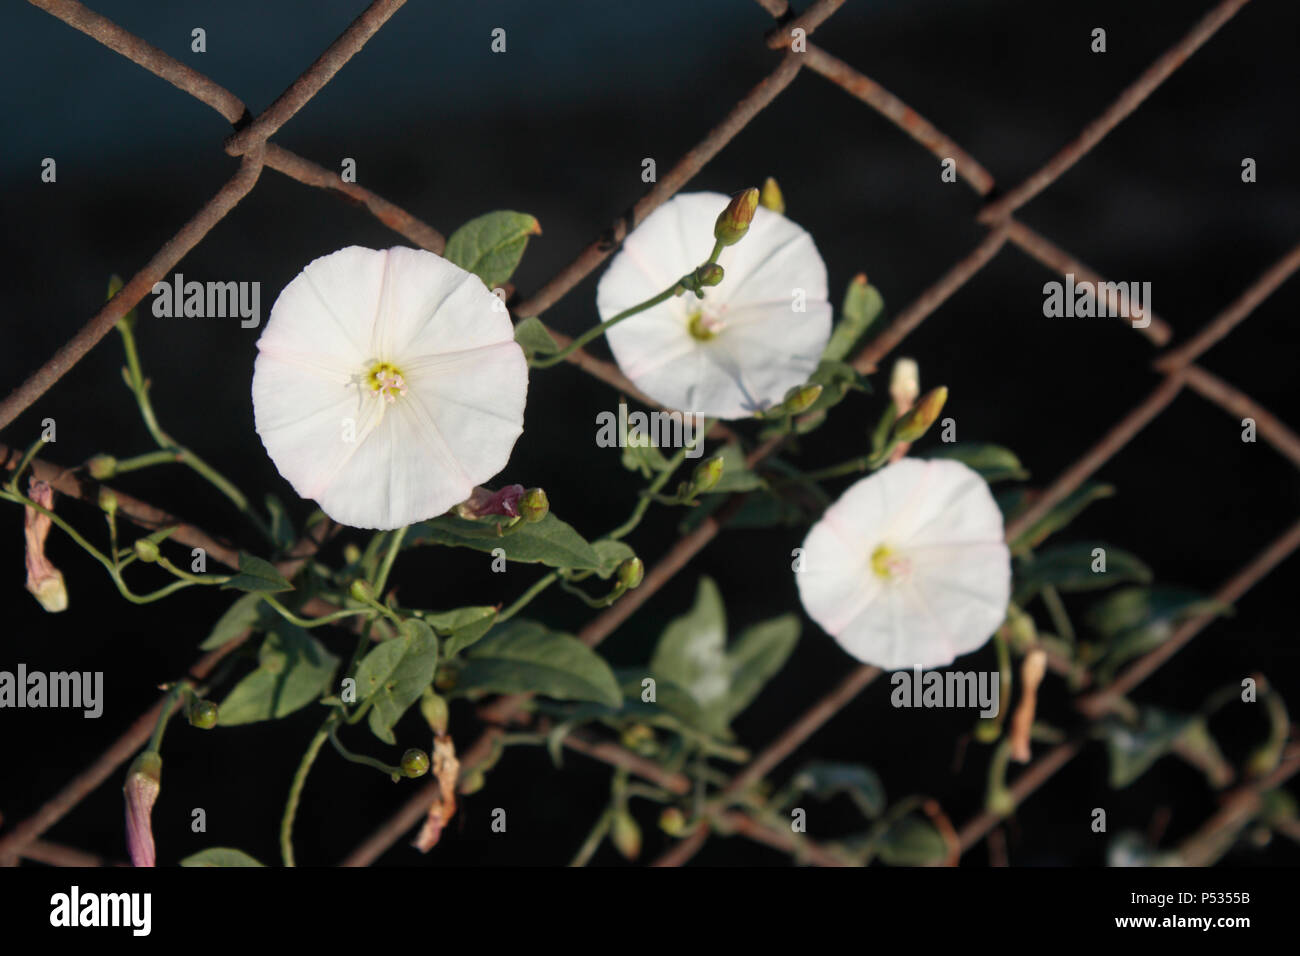 Flowers blooming on fence against a dark background. Concept photo representing hope, tenacity, struggles for freedom, survival etc. - Stock Image